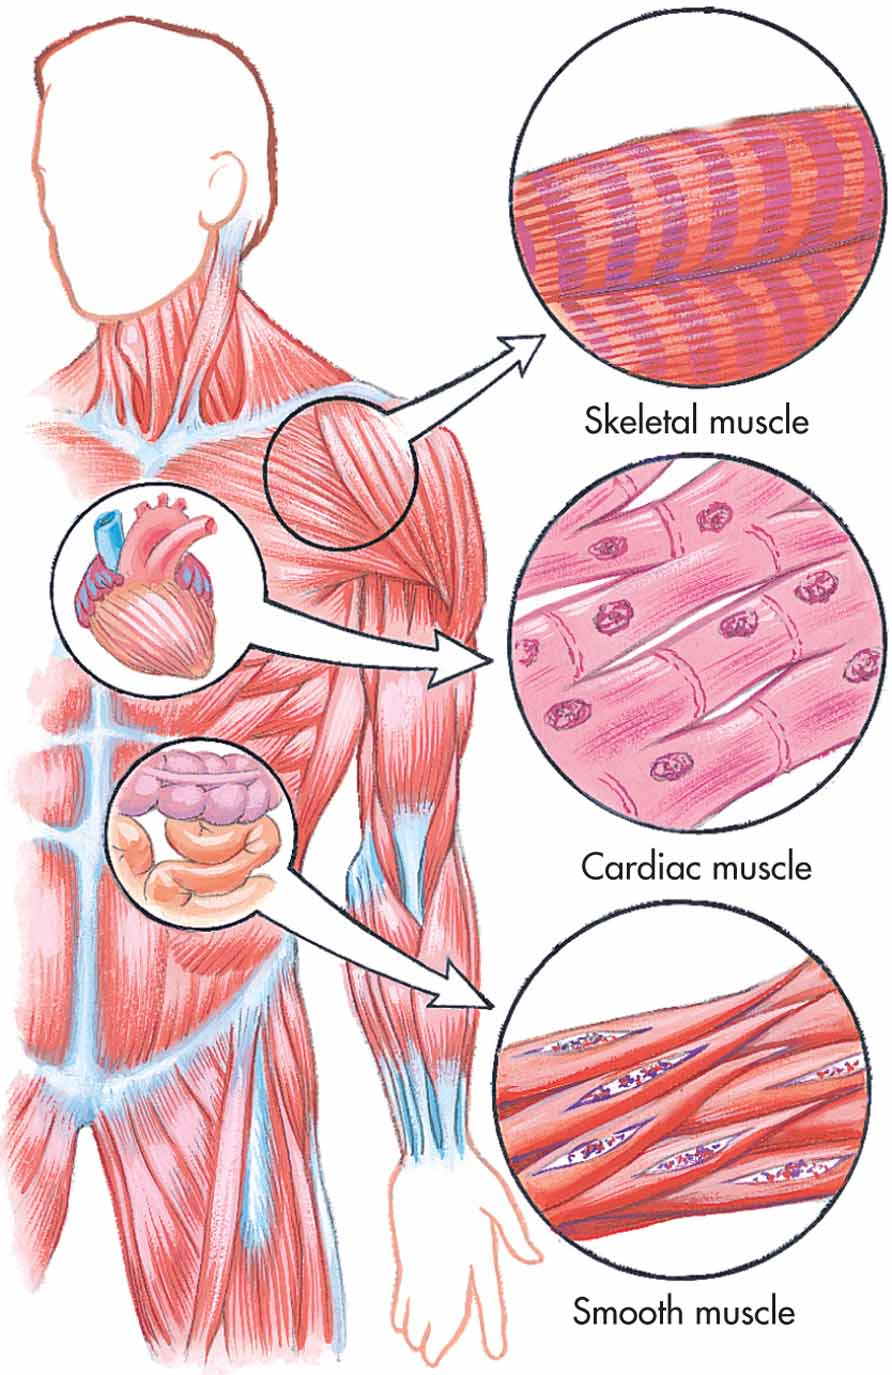 types of muscle tissue Skeletal muscle is the most abundant type of muscle tissue found in the vertebrate body, making up at least 40% of its mass although it is often activated by reflexes that function in automatically in response to an outside stimulus, skeletal muscle is also called voluntary muscle because it is the only type subject to conscious control.